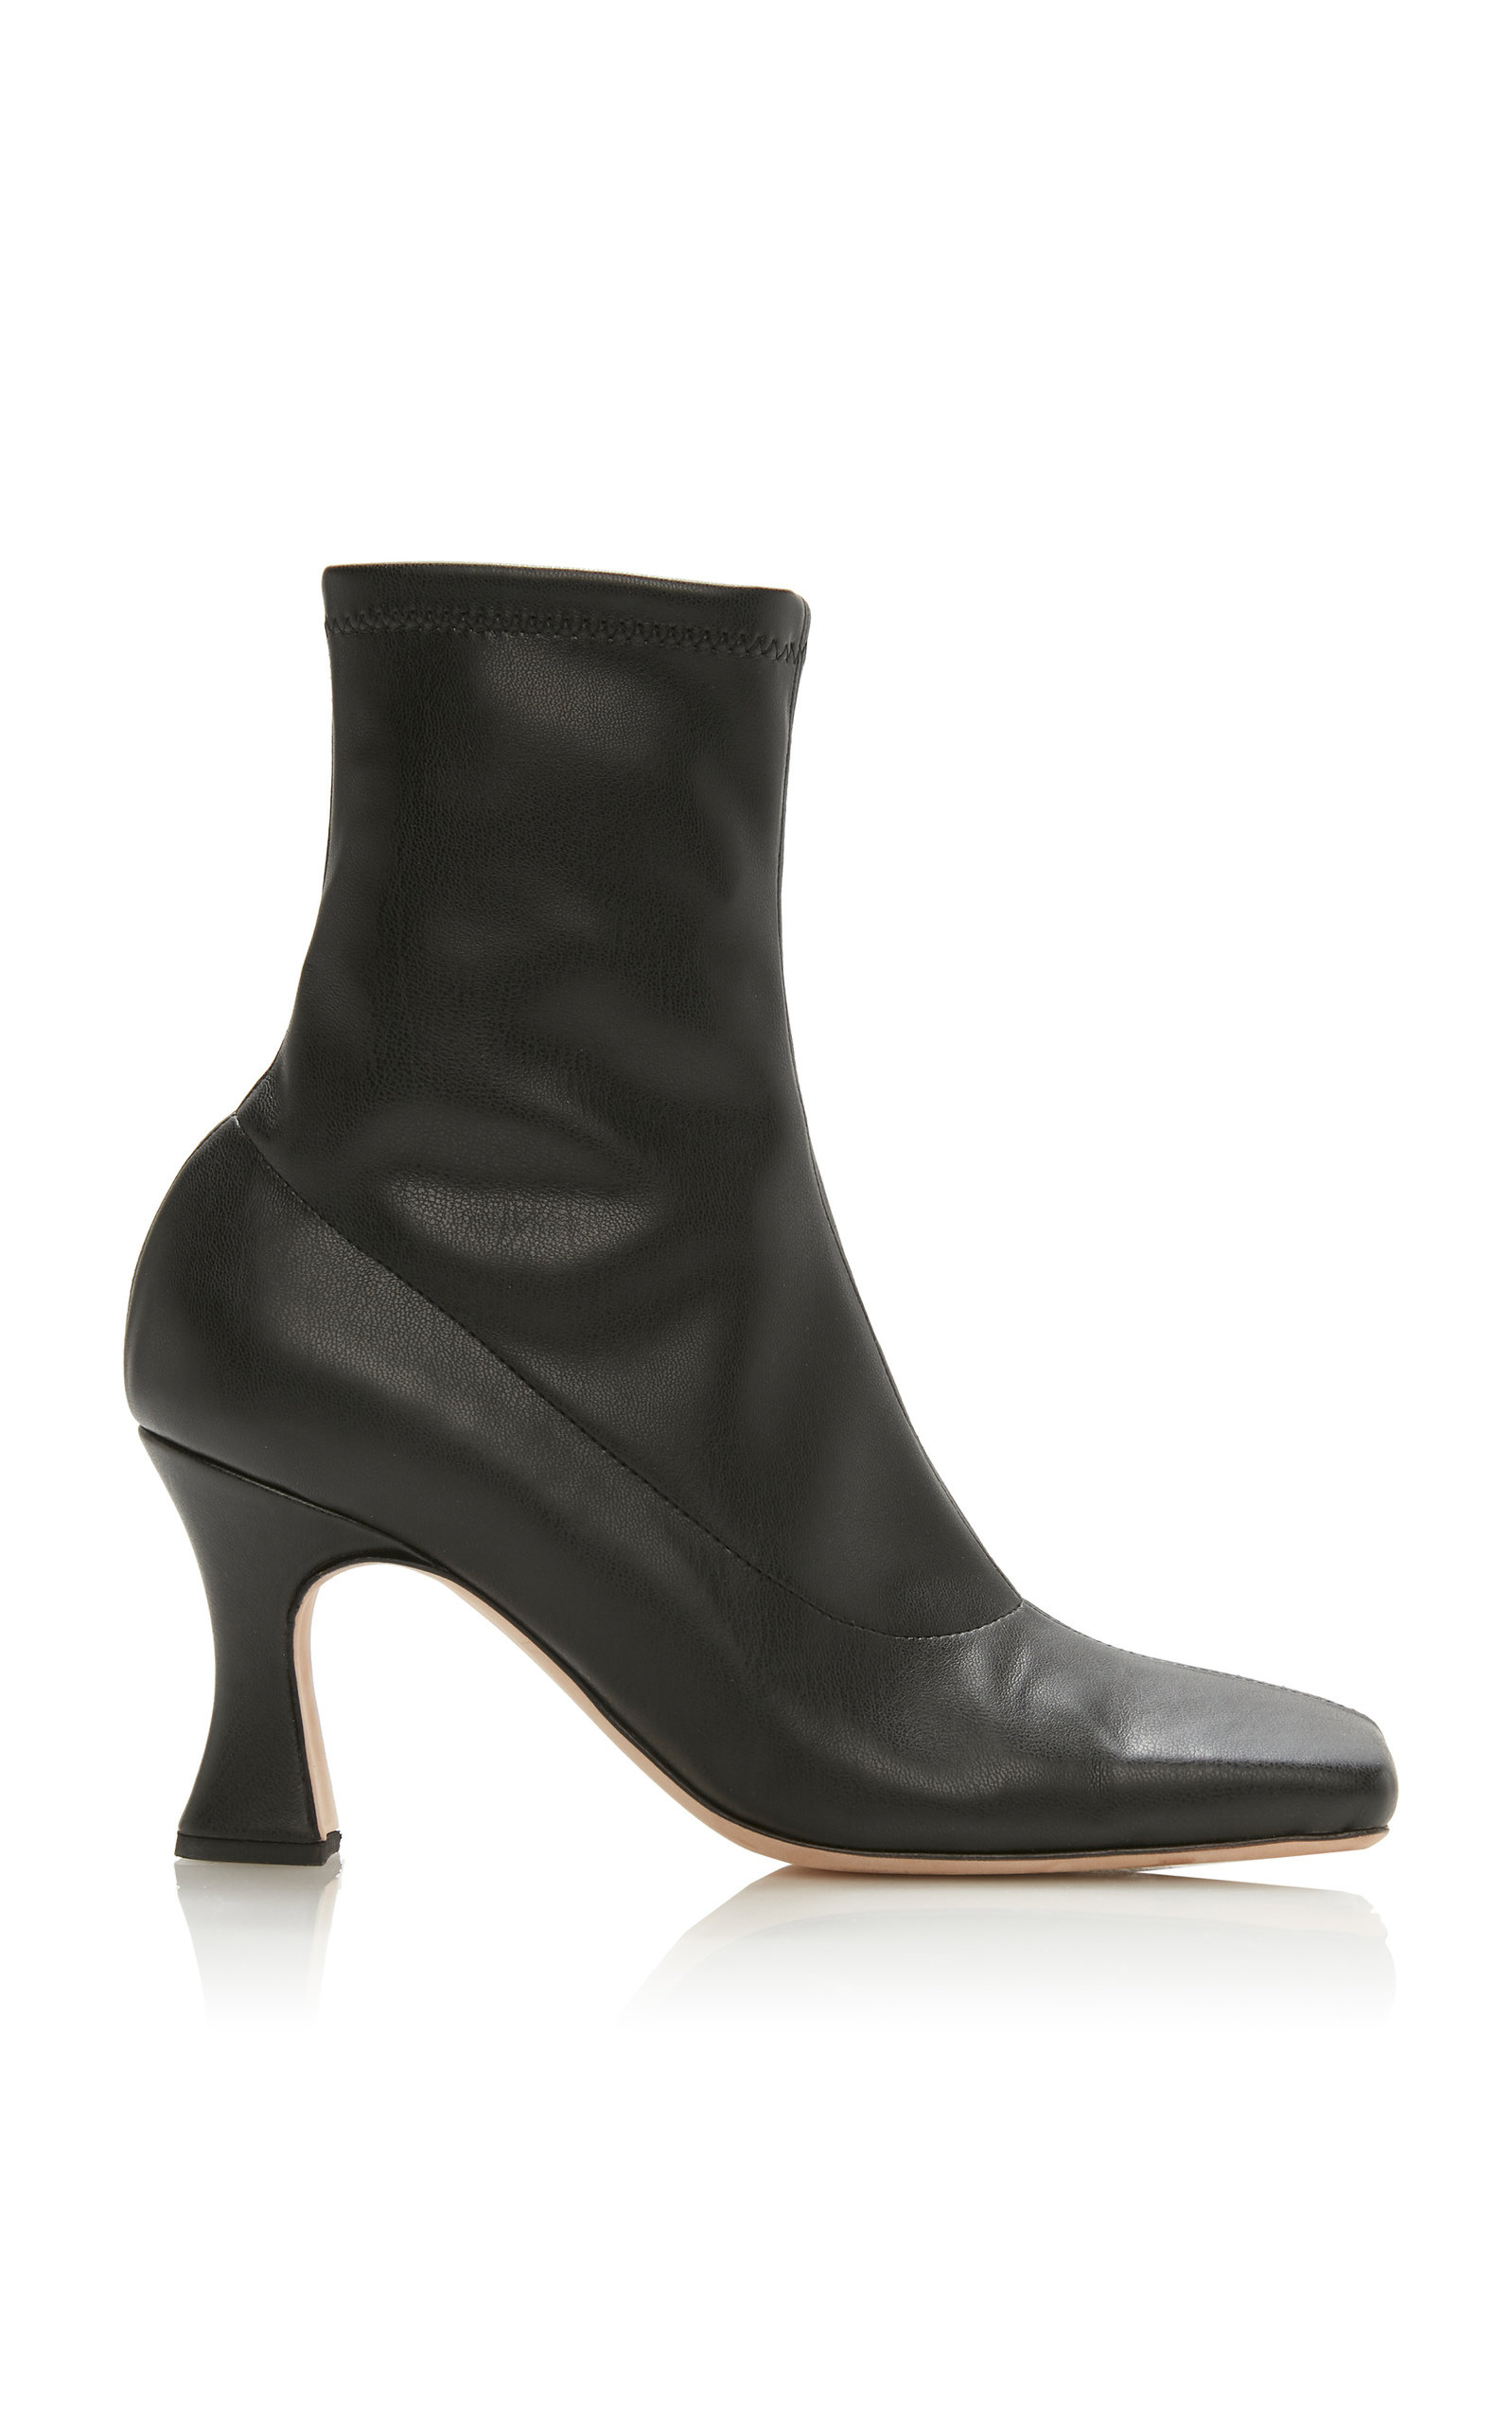 Priscilla Leather Ankle Boots